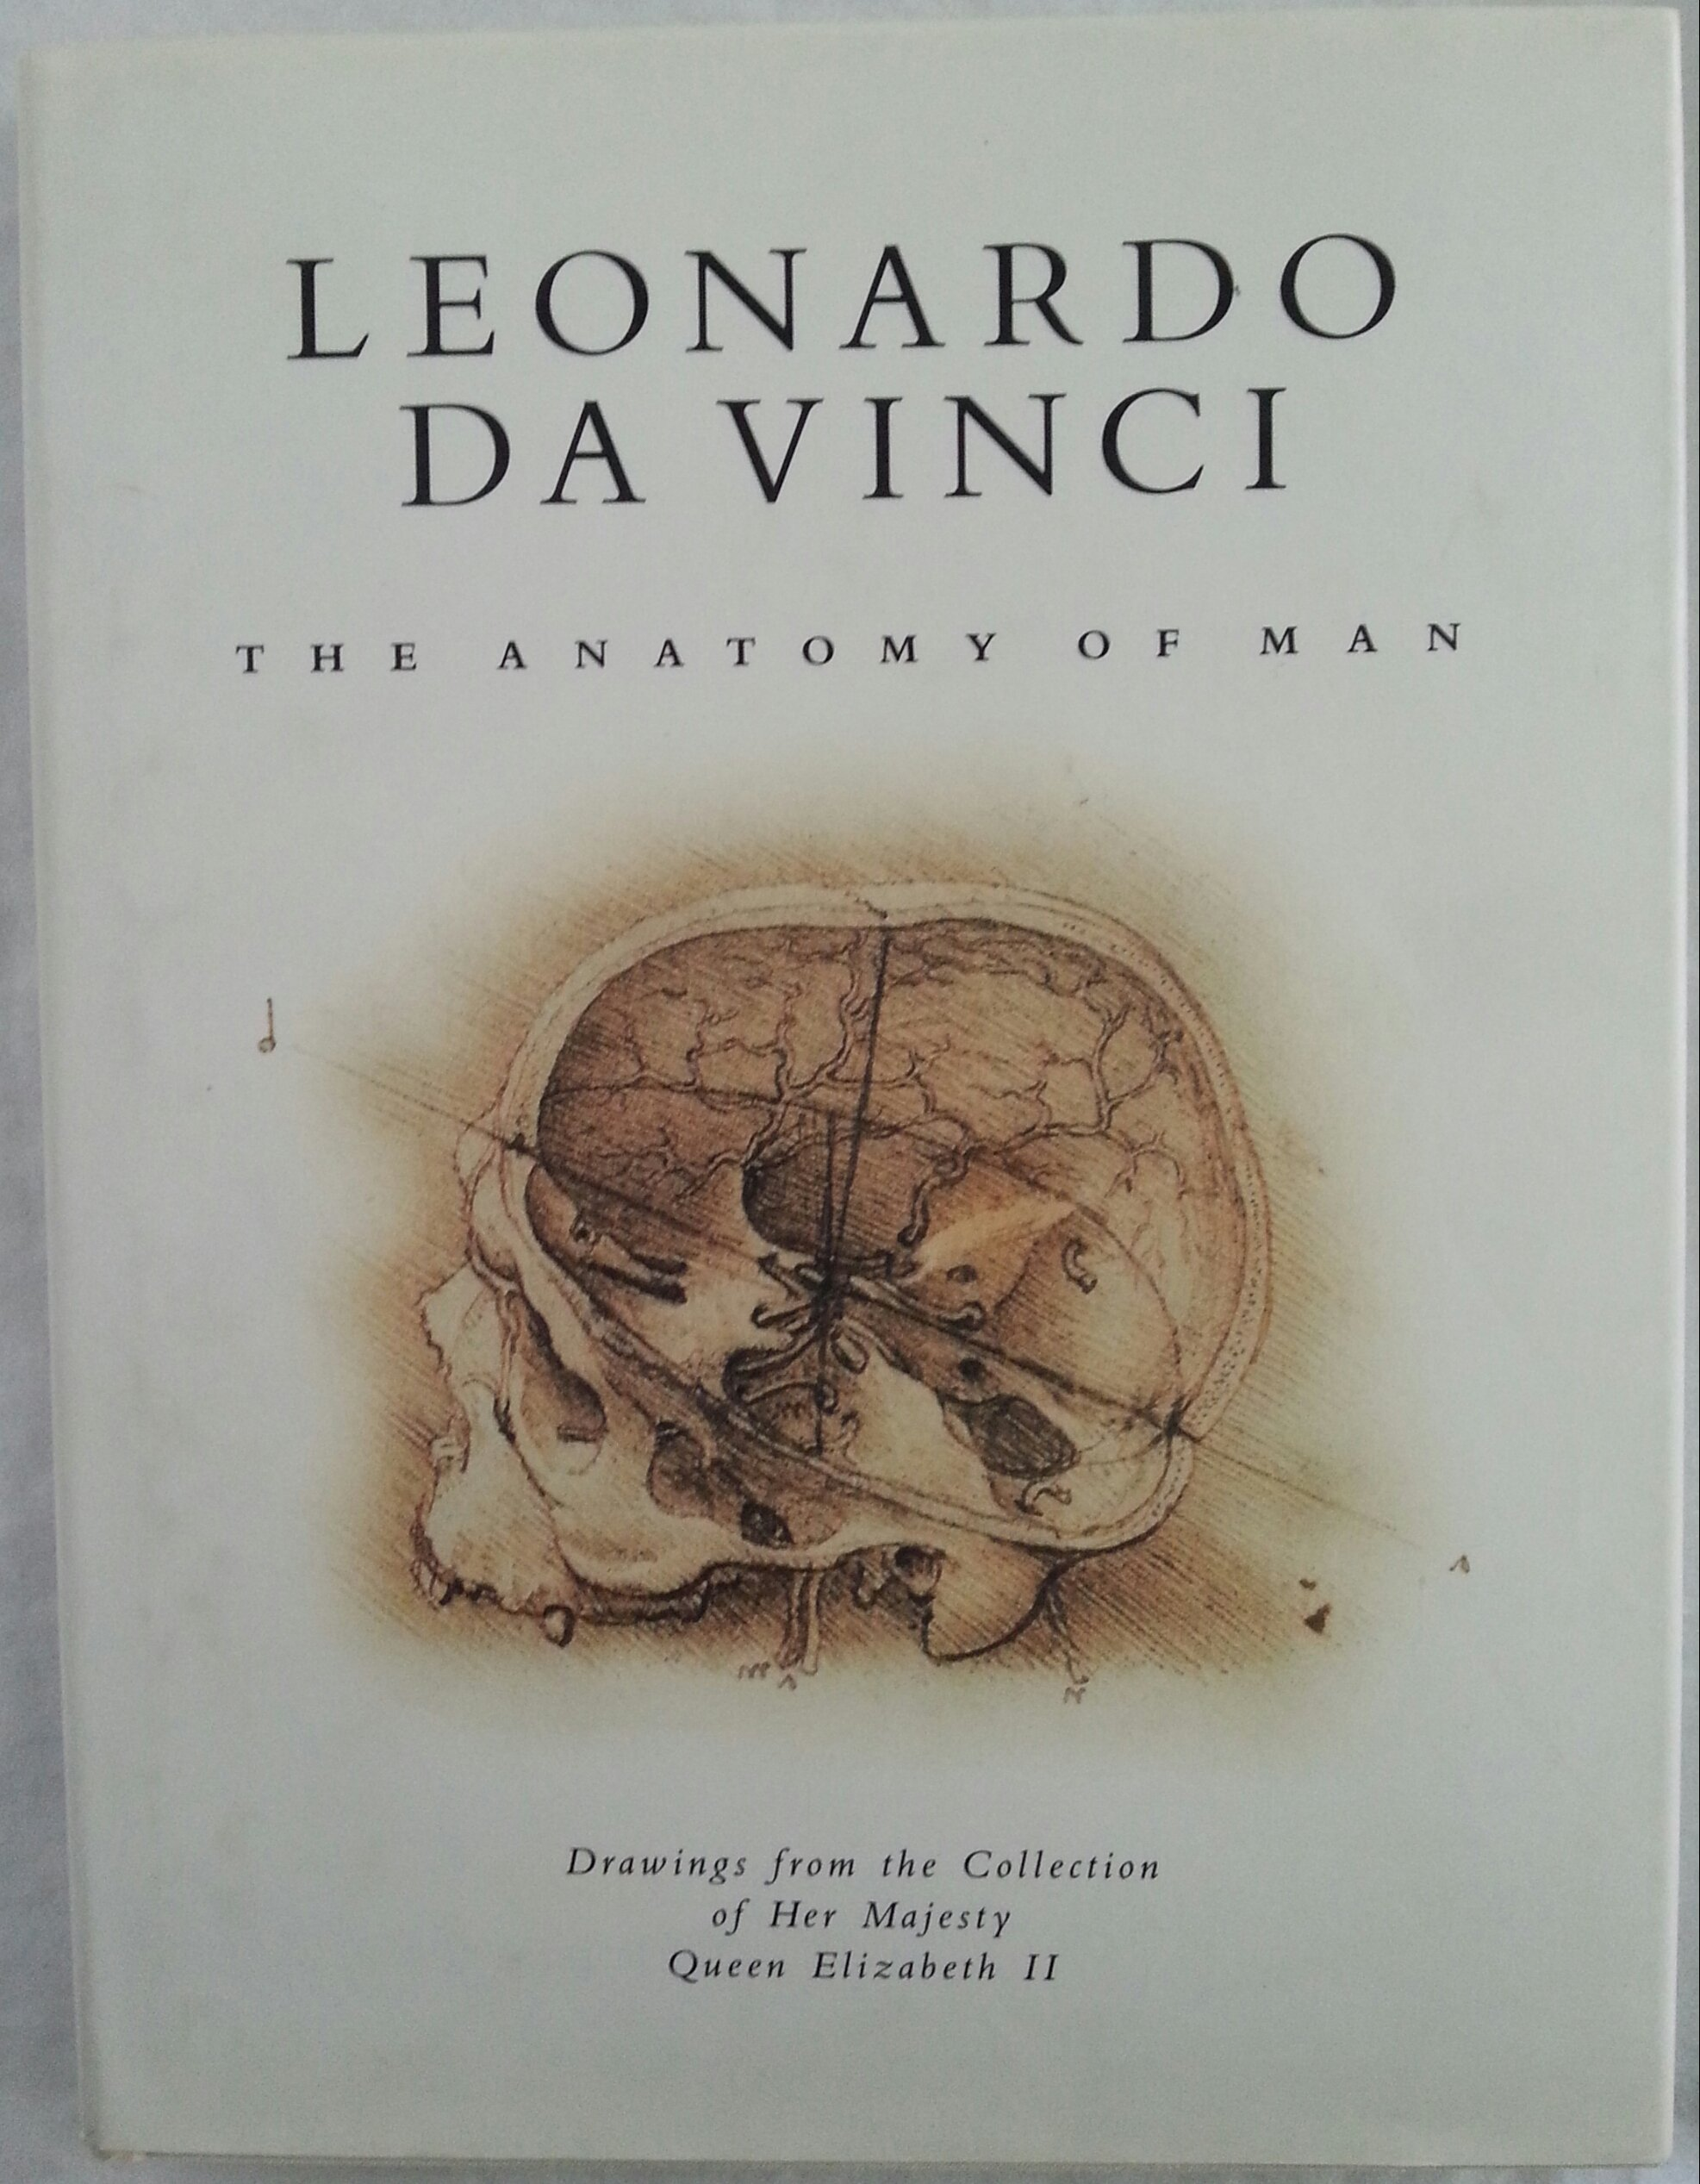 Leonardo Da Vinci The Anatomy Of Man Drawings From The Collection